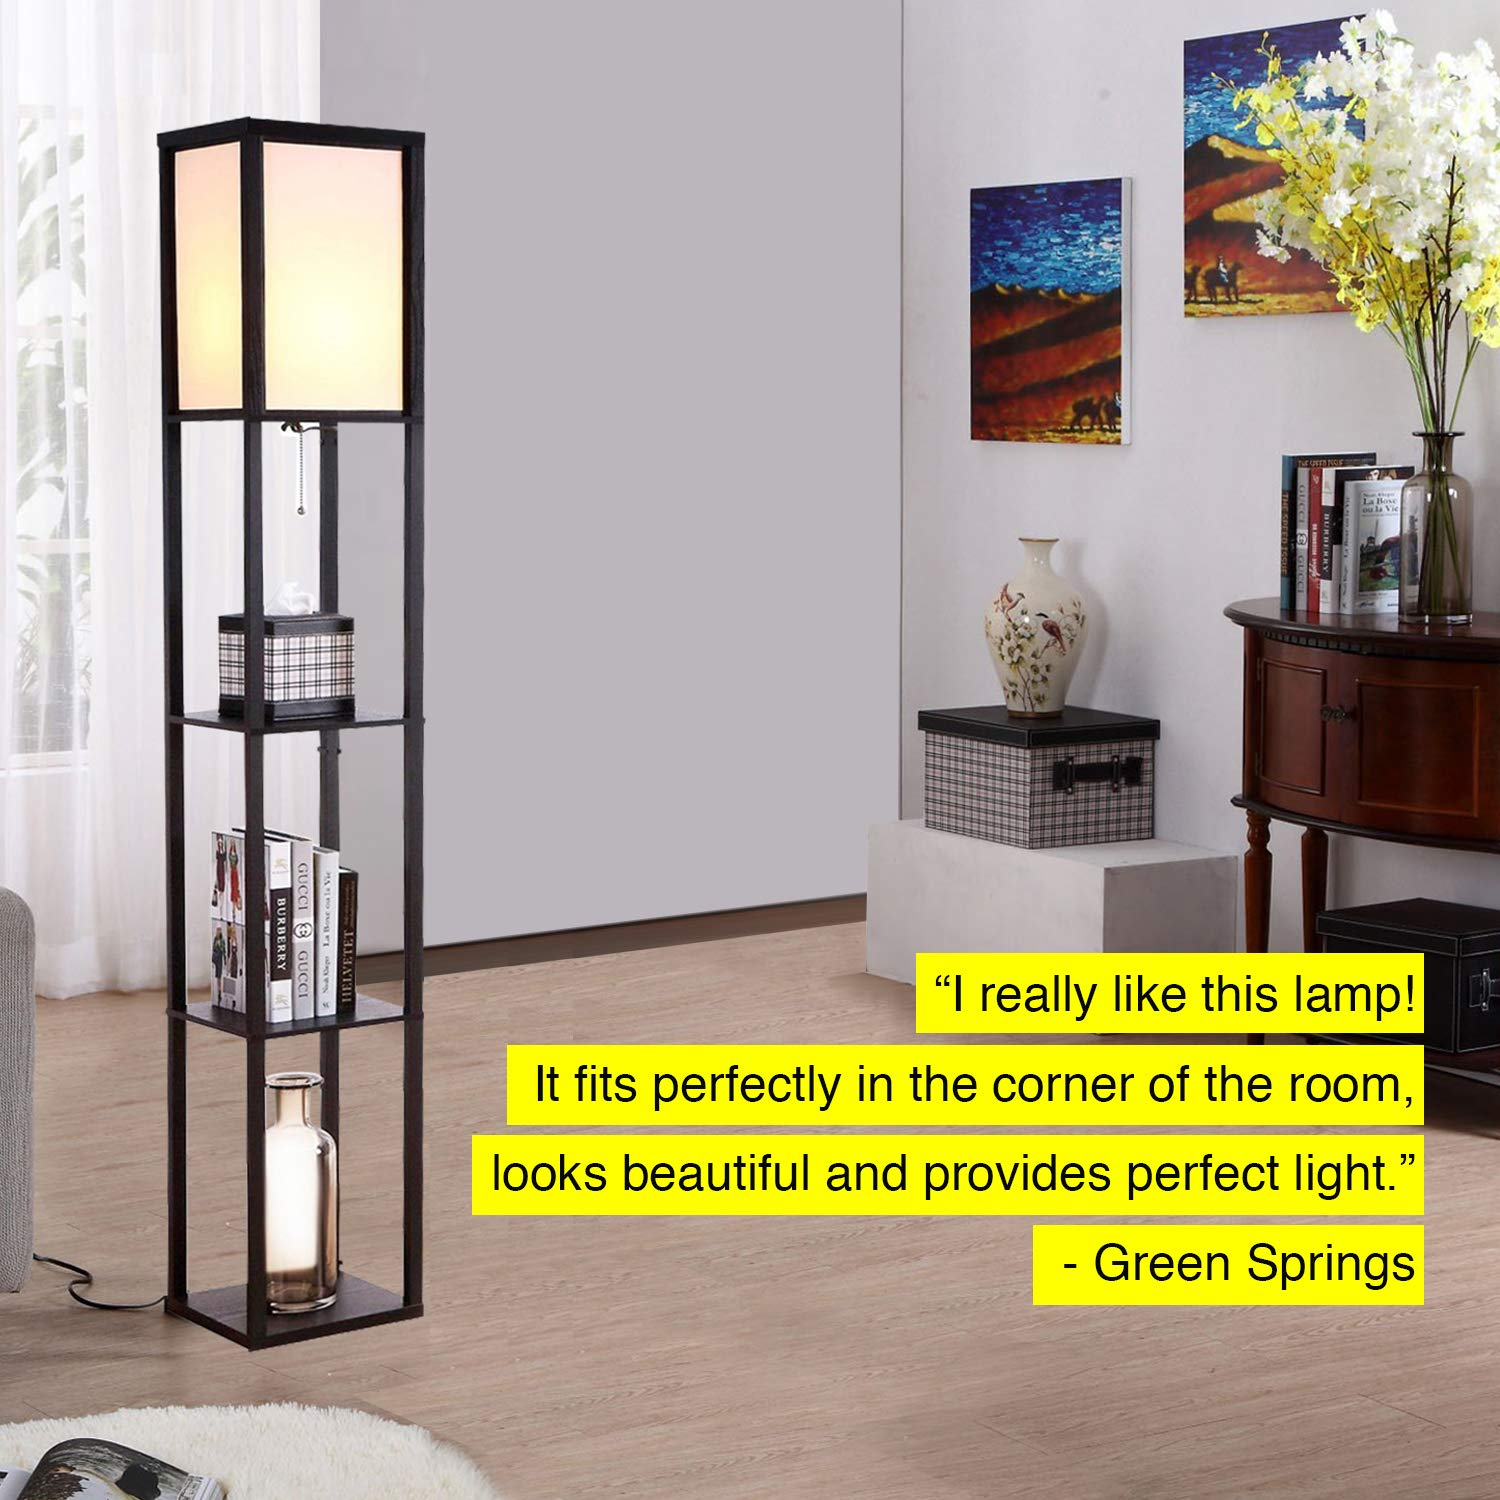 Brightech Maxwell - LED Shelf Floor Lamp - Modern Standing Light for Living Rooms & Bedrooms - Asian Wooden Frame with Open Box Display Shelves - Black by Brightech (Image #4)